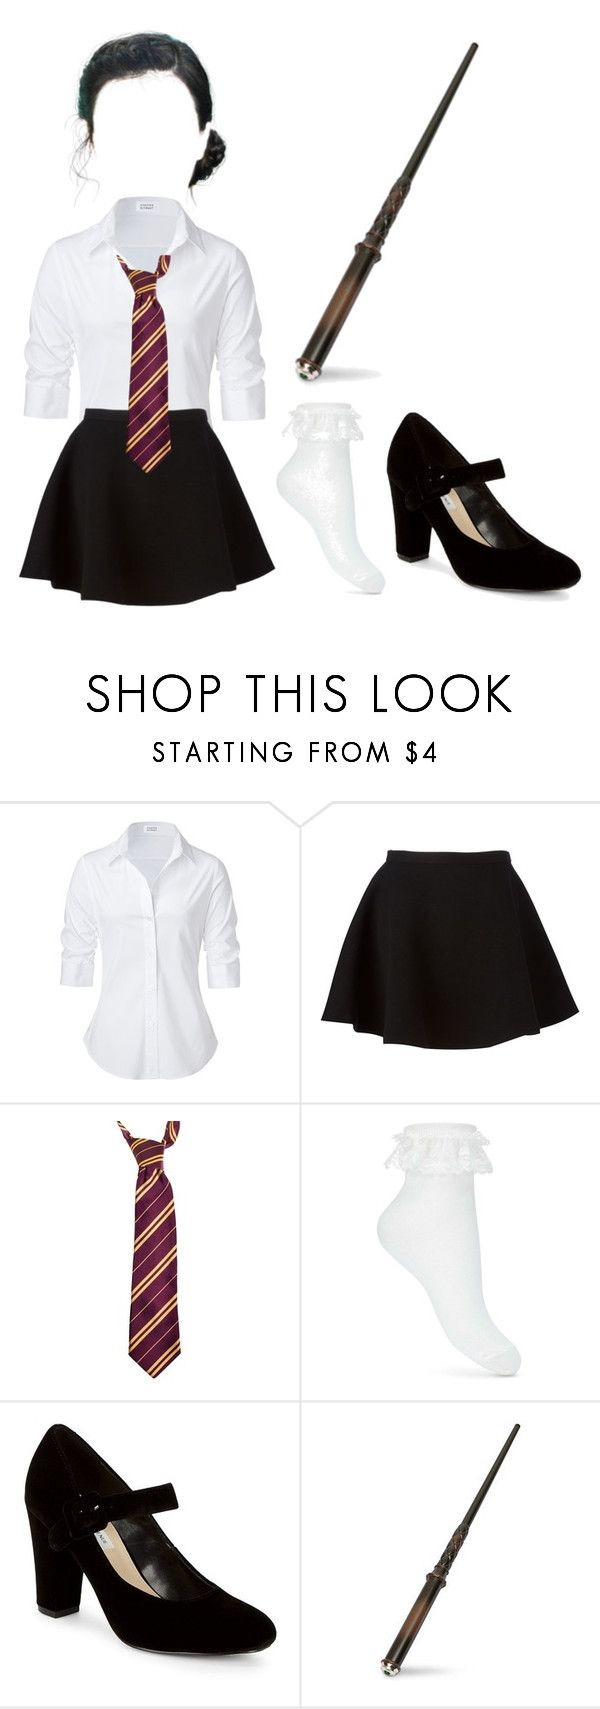 """""""hogwarts robes"""" by piperrichardson ❤ liked on Polyvore featuring Steffen Schraut, Neil Barrett, Rubie's Costume Co., Miss Selfridge and Saks Fifth Avenue"""